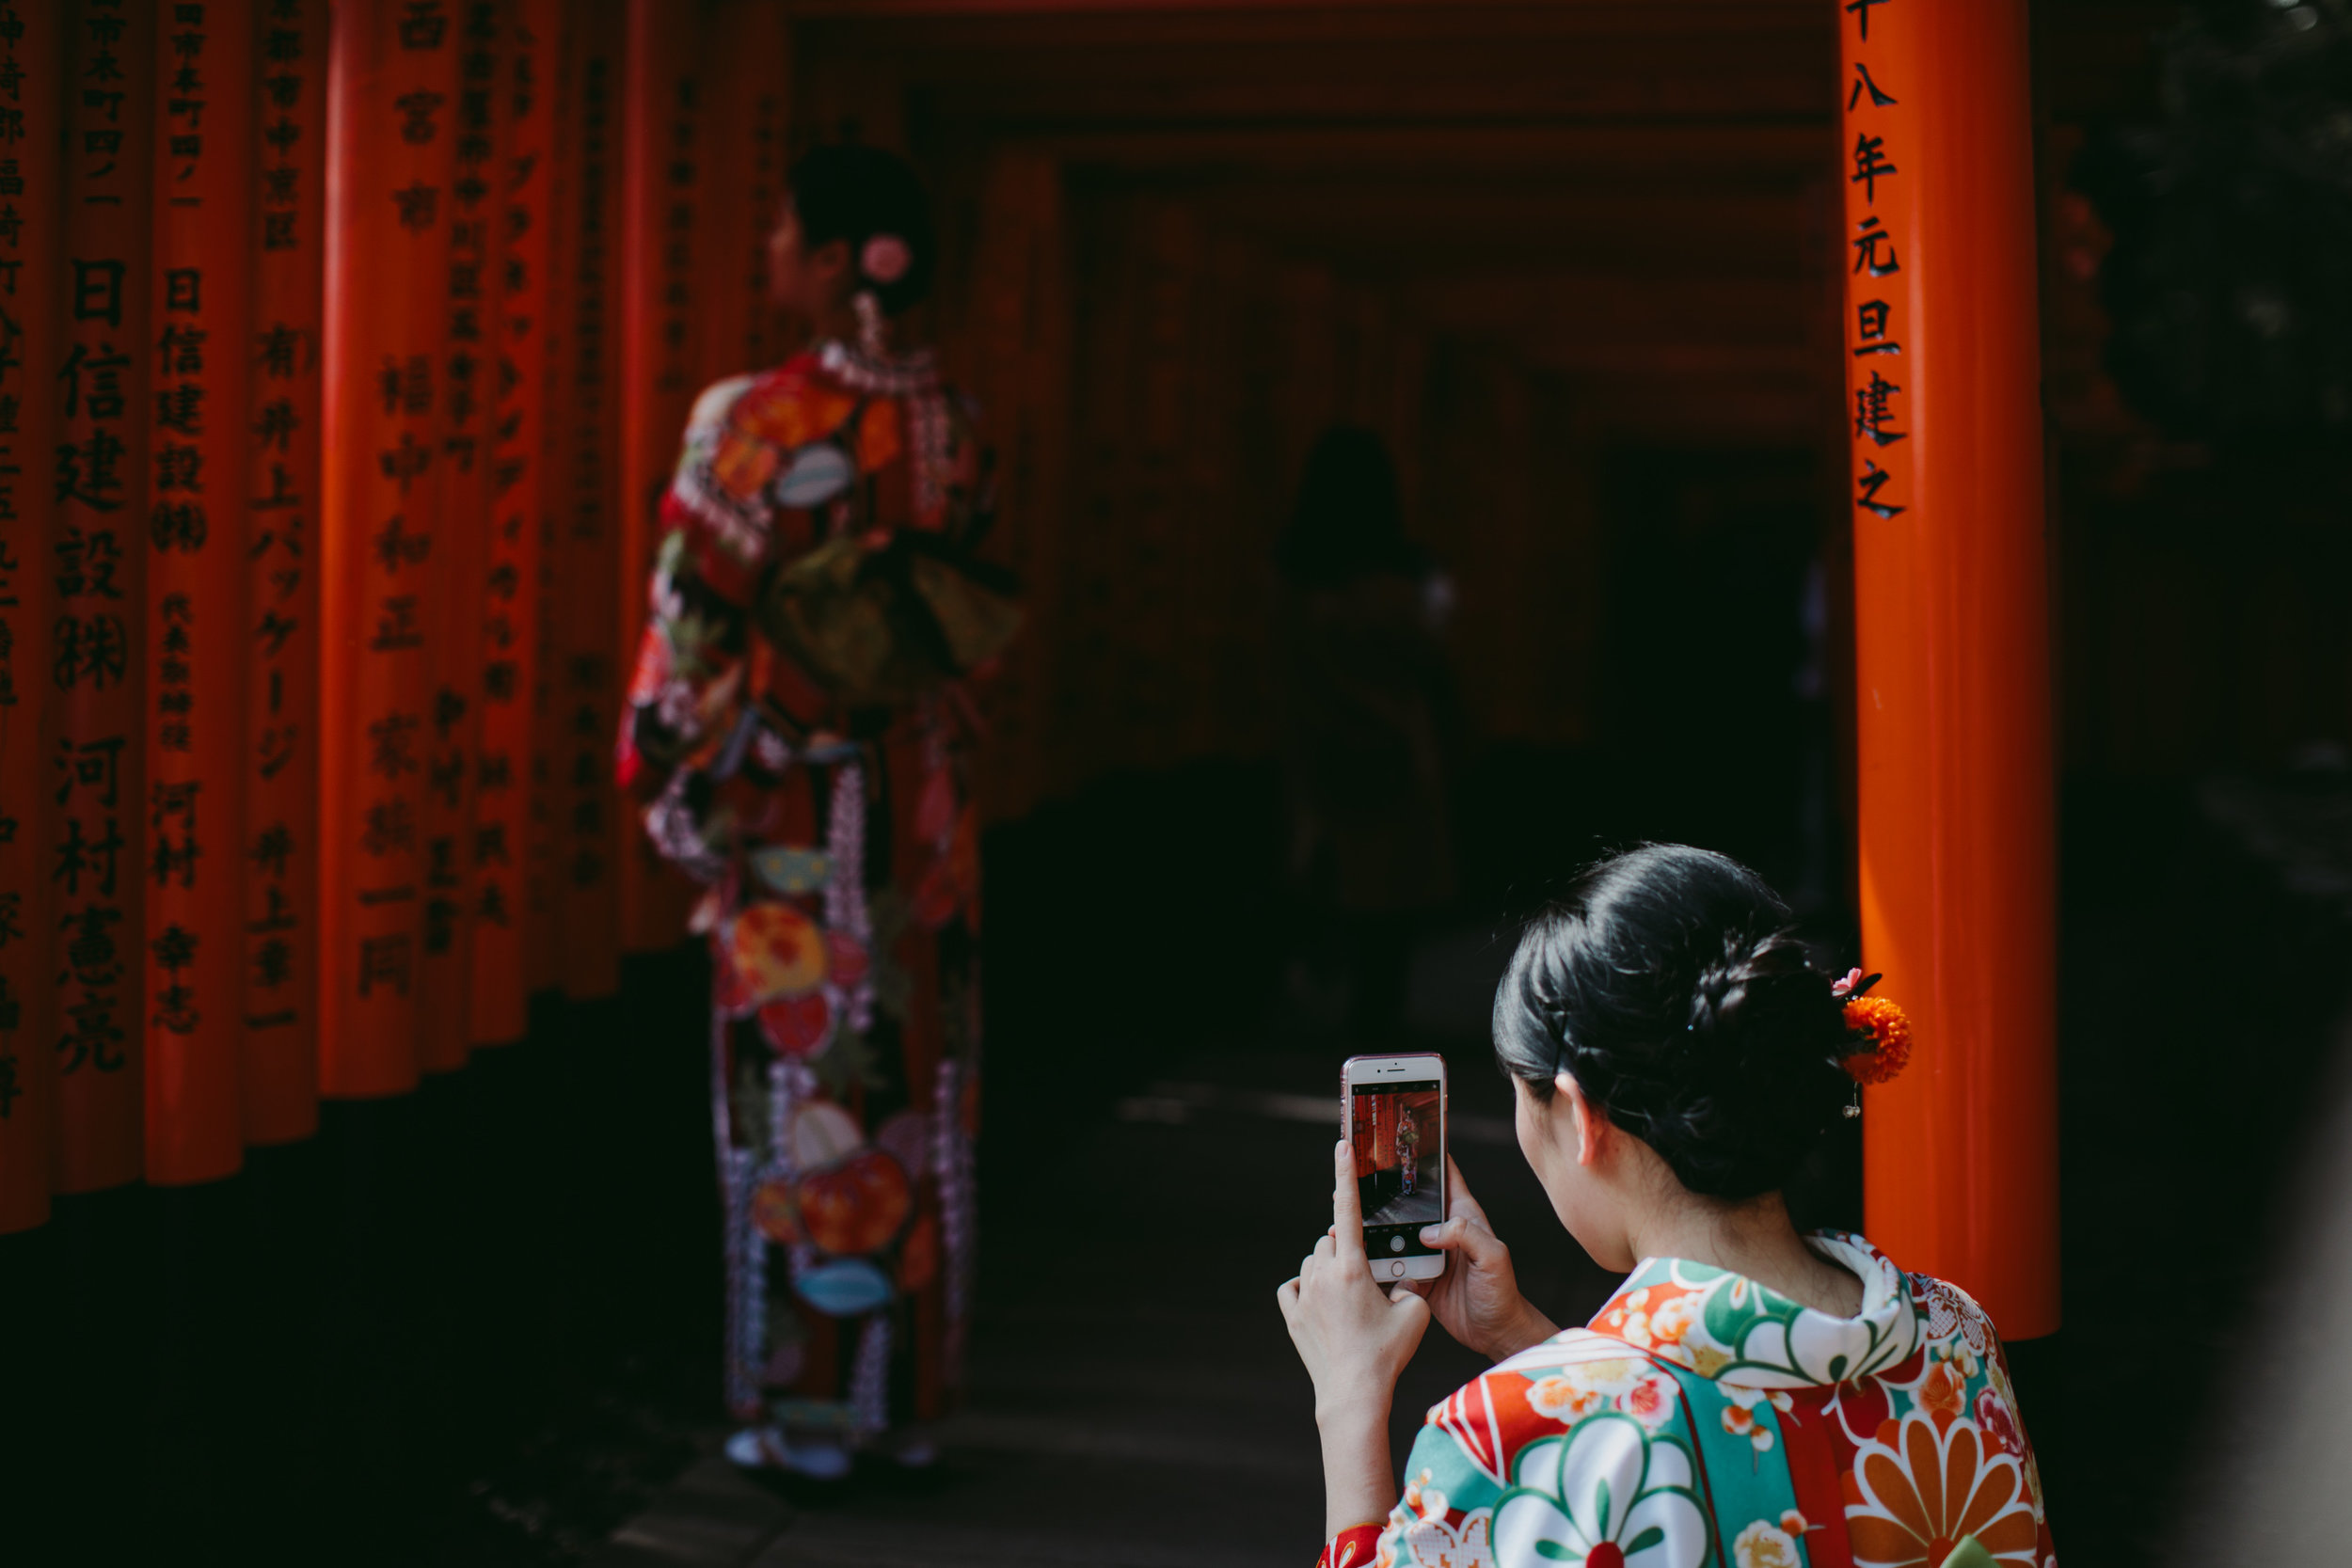 MikeSeehagel-commercial-lifestyle-travel-photography-Japan-52.jpg